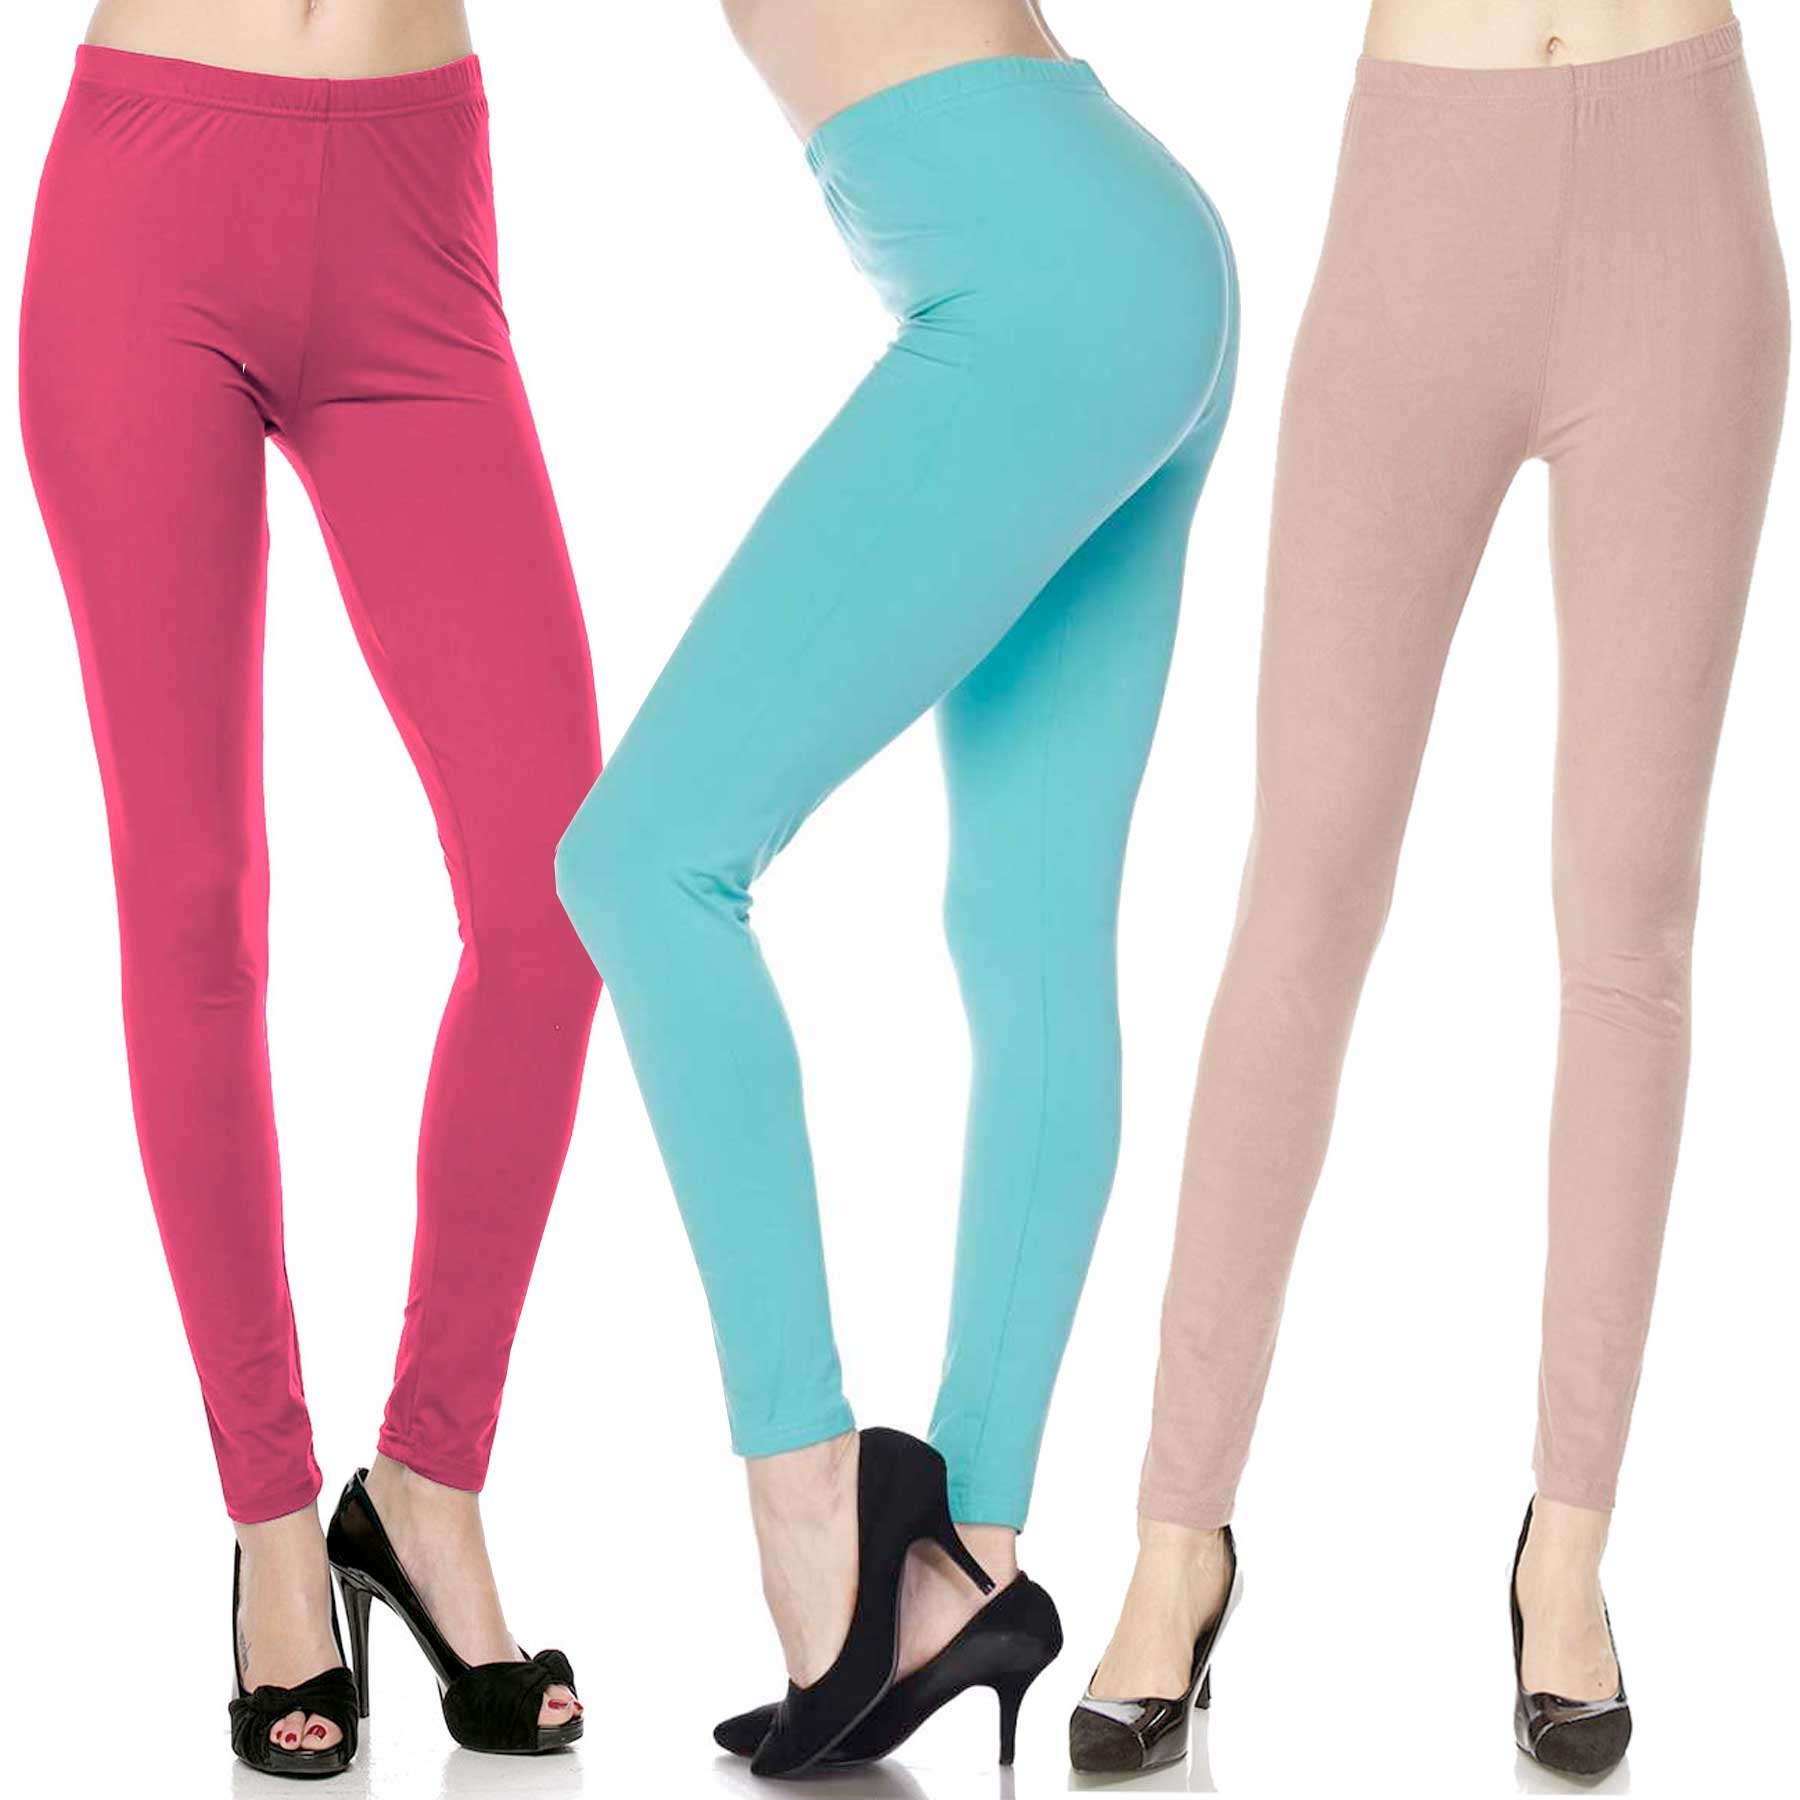 Brushed Fiber Leggings - Ankle Length Solids